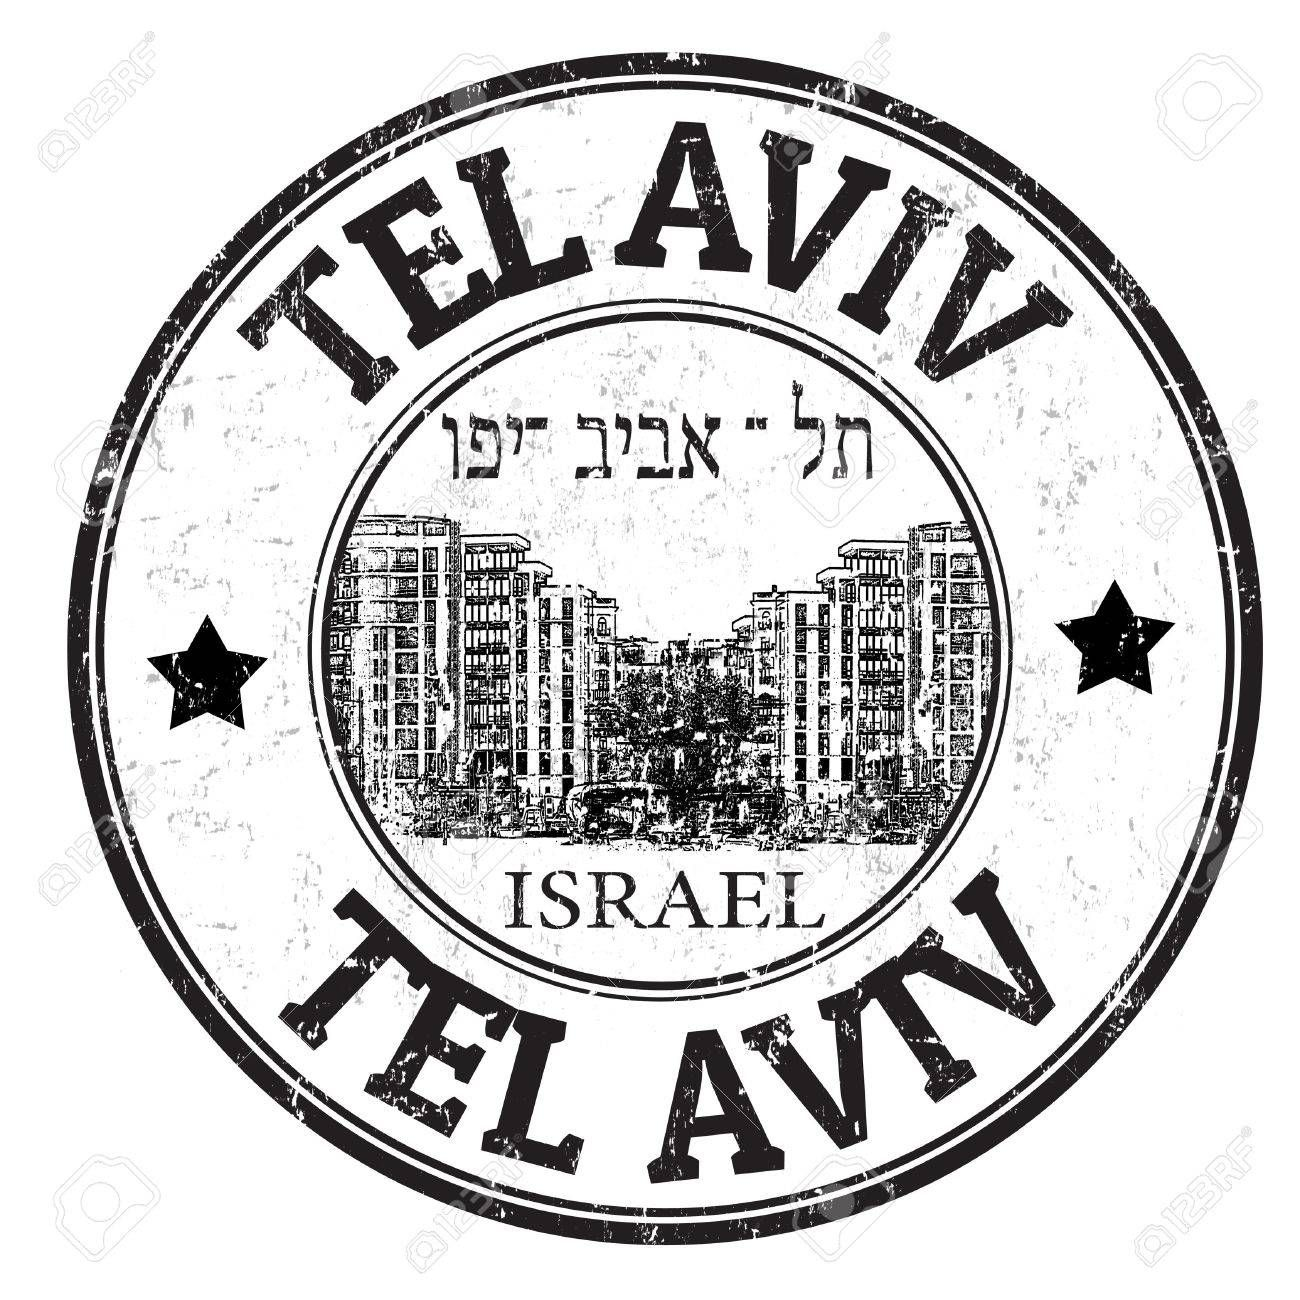 Black grunge rubber stamp with the name of Tel Aviv city